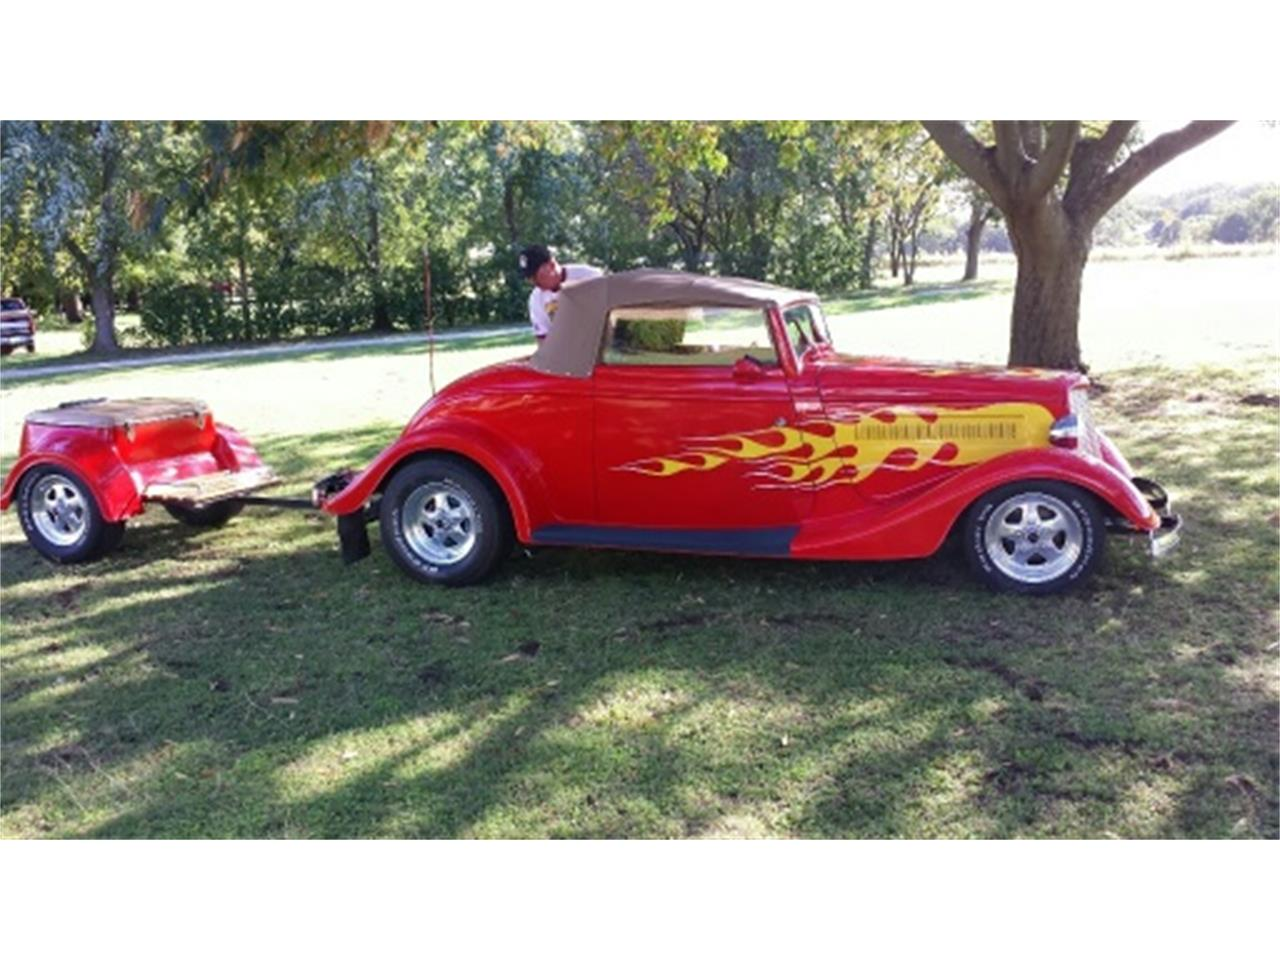 Large Picture of Classic '34 Ford Cabriolet located in Oklahoma - $30,000.00 Offered by a Private Seller - L1H0